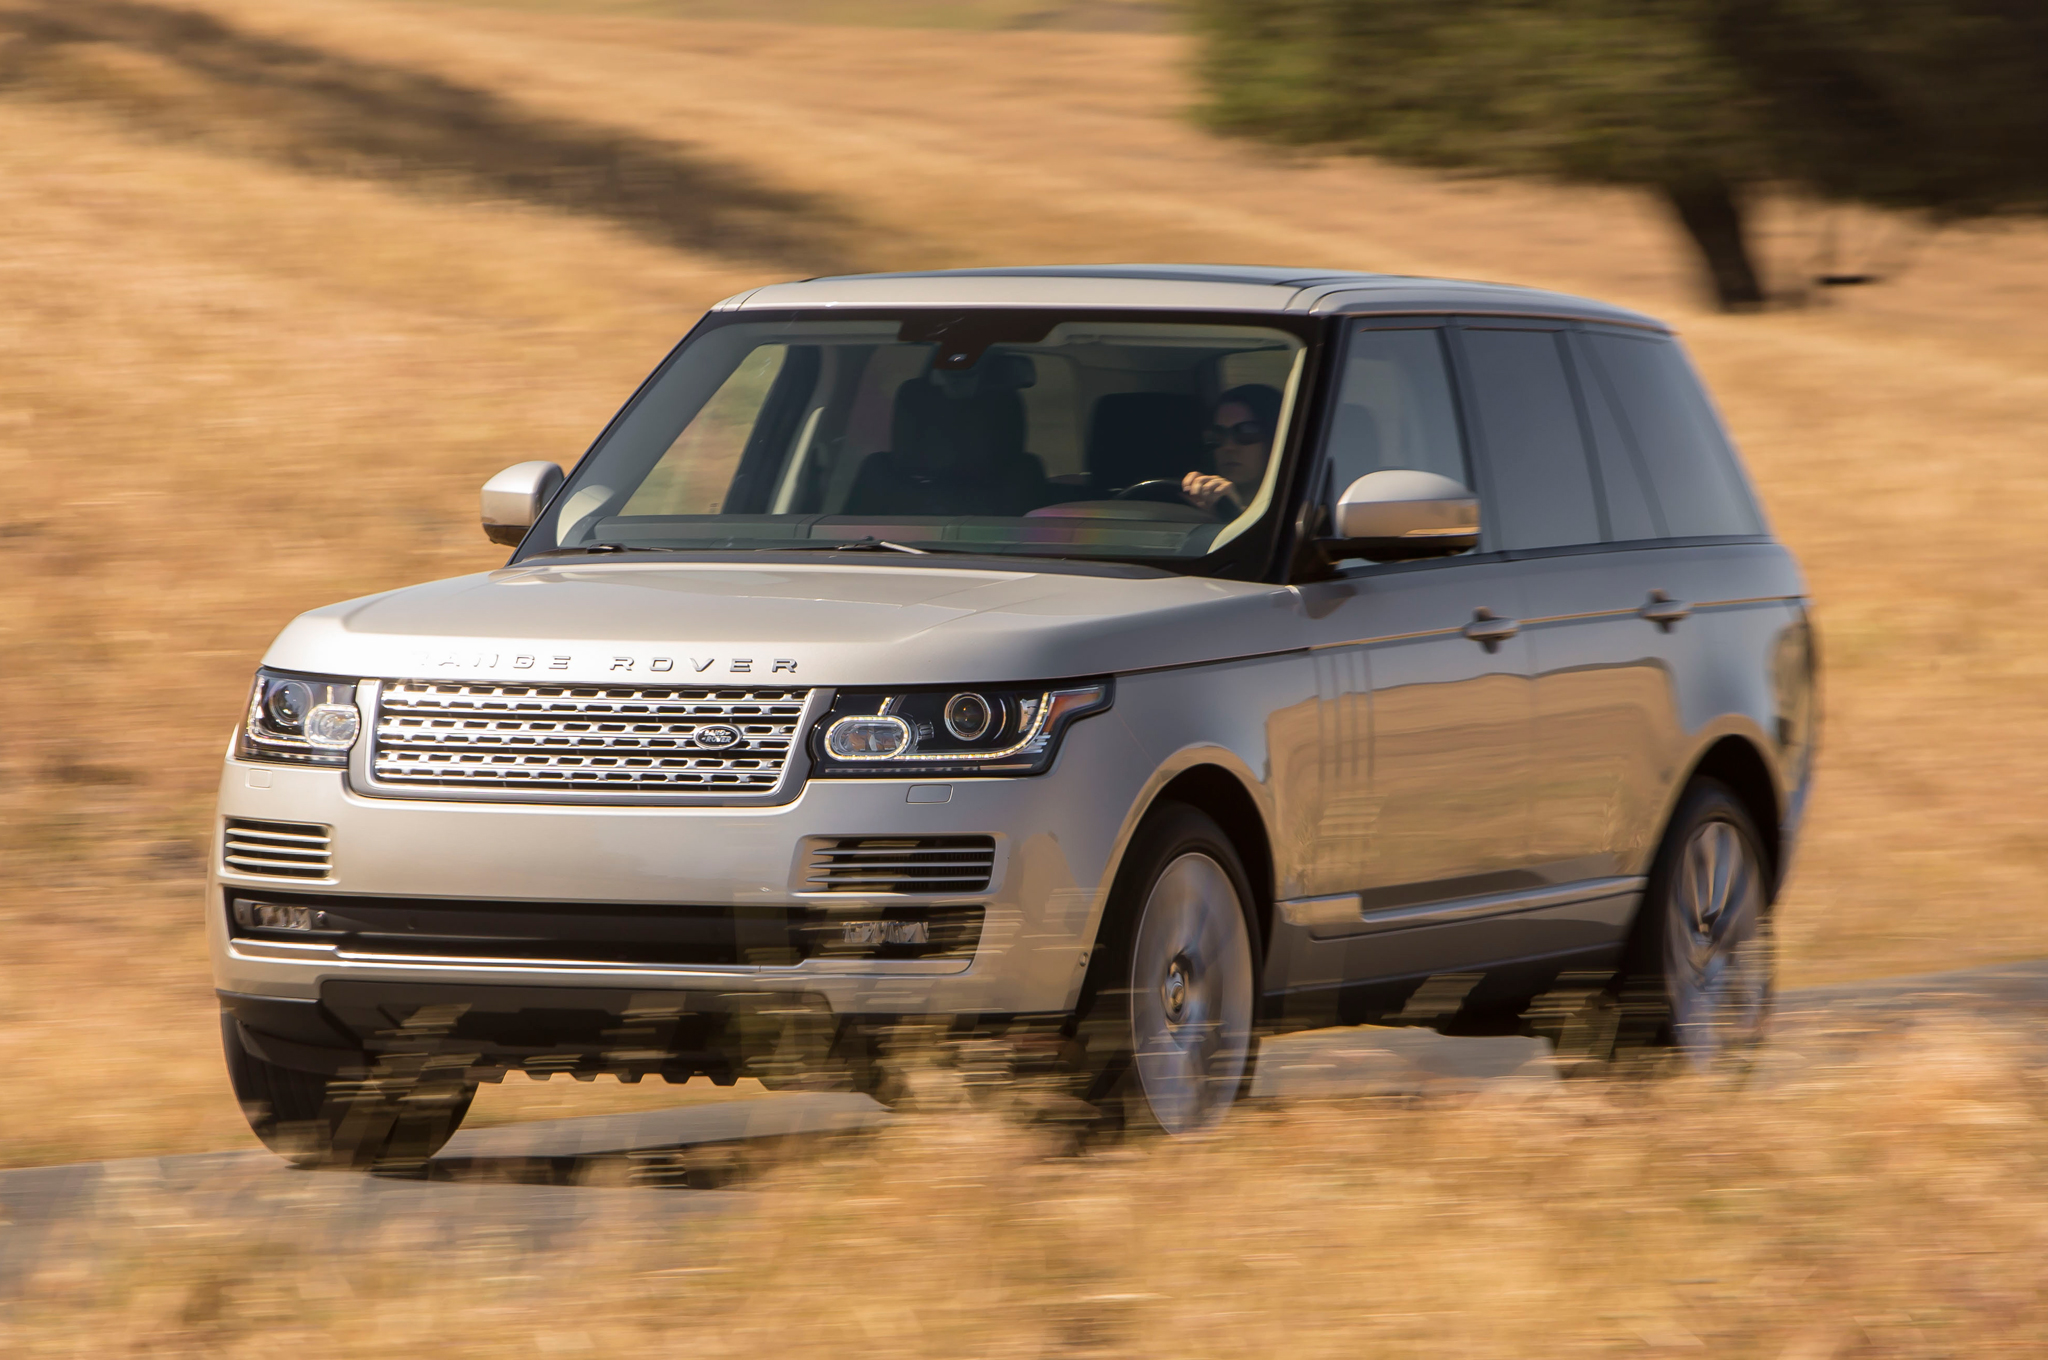 2013 Range Rover Supercharged First Test - Motor Trend